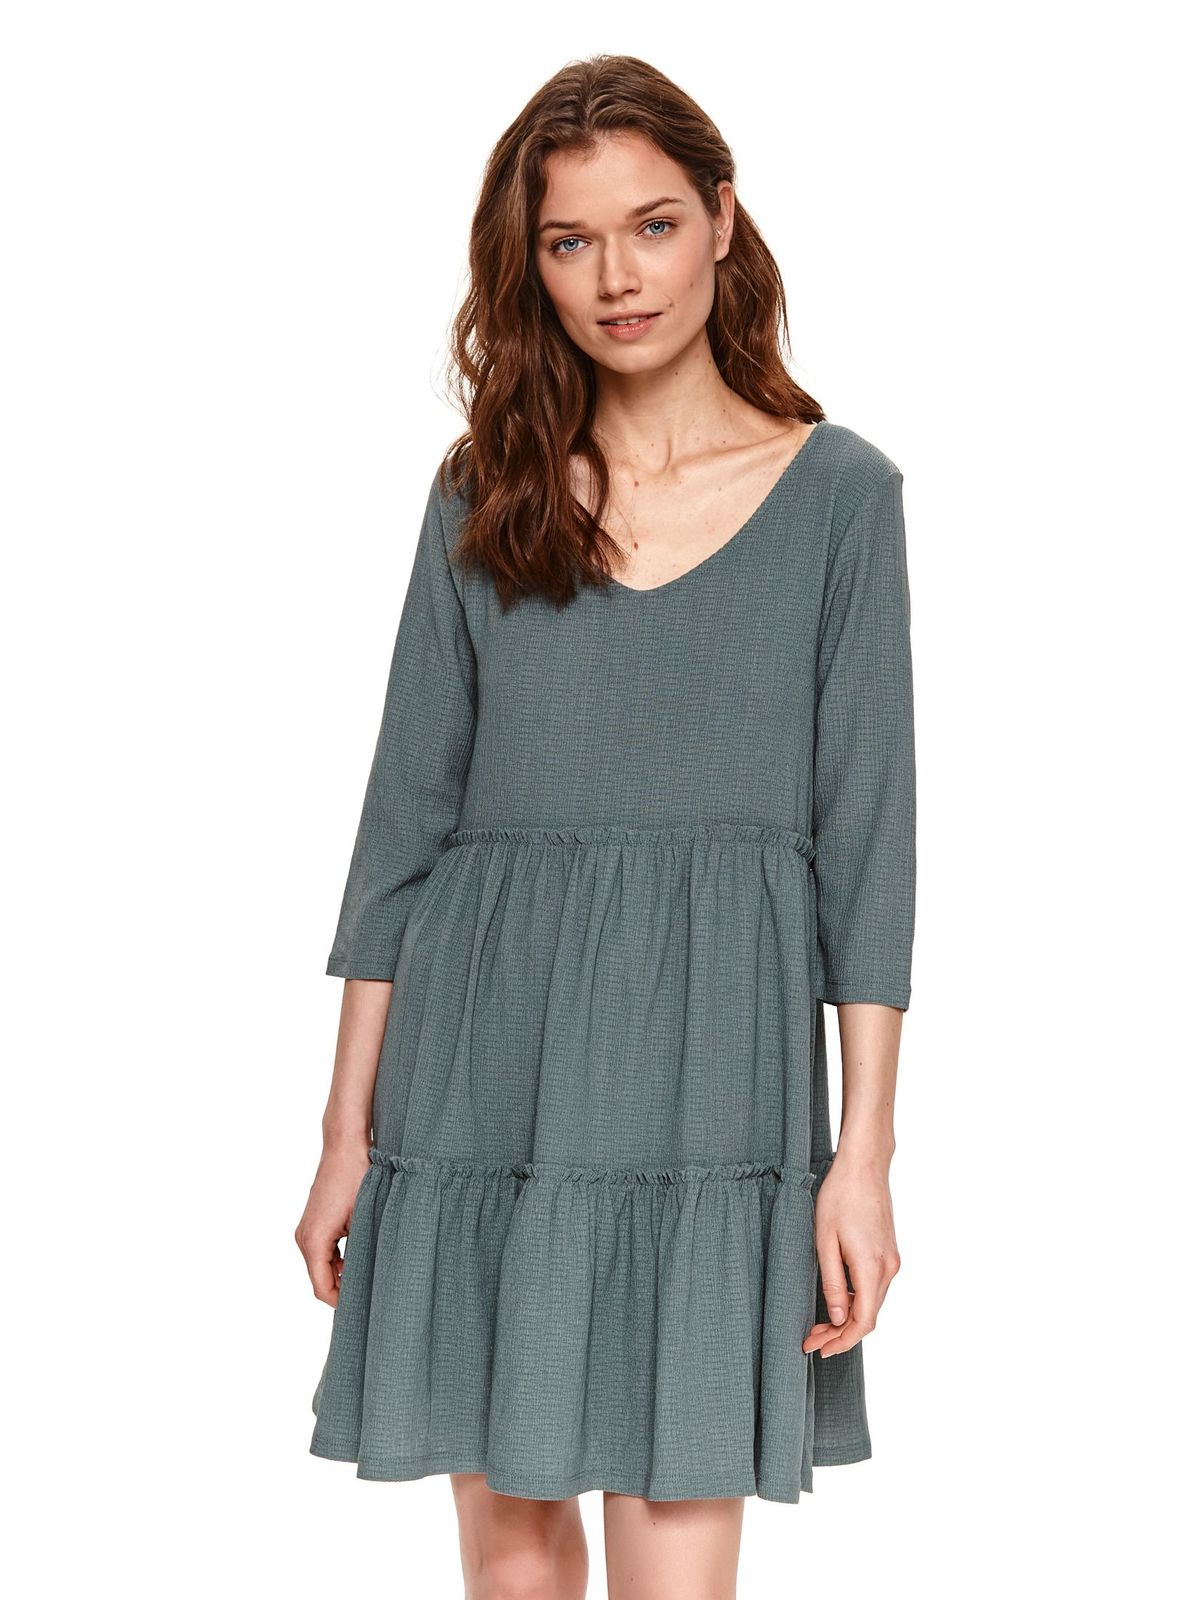 Green dress loose fit casual with ruffle details with v-neckline